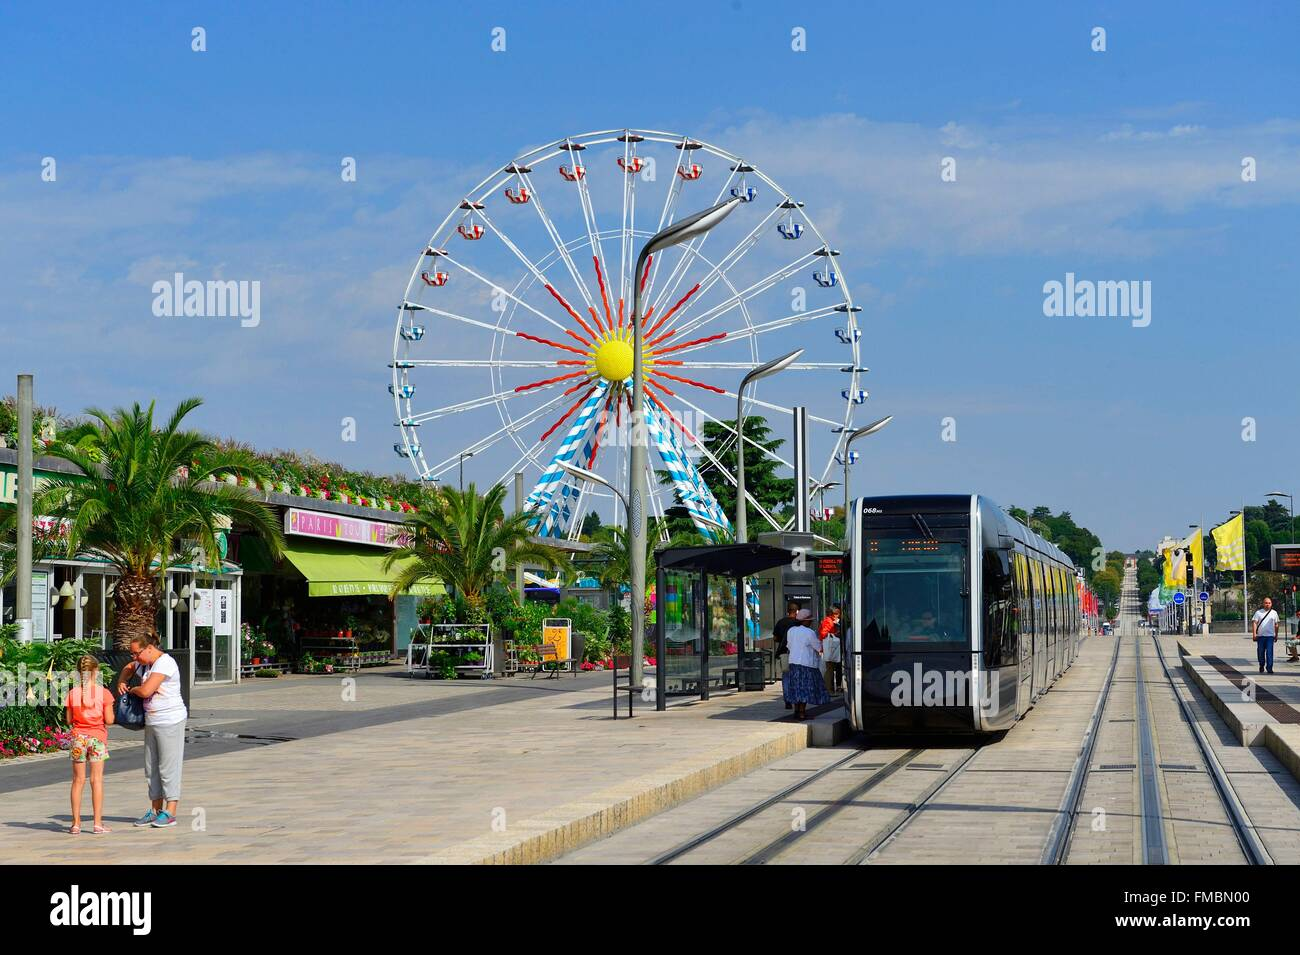 France, Indre et Loire, Tours, tramway on Nationale street - Stock Image